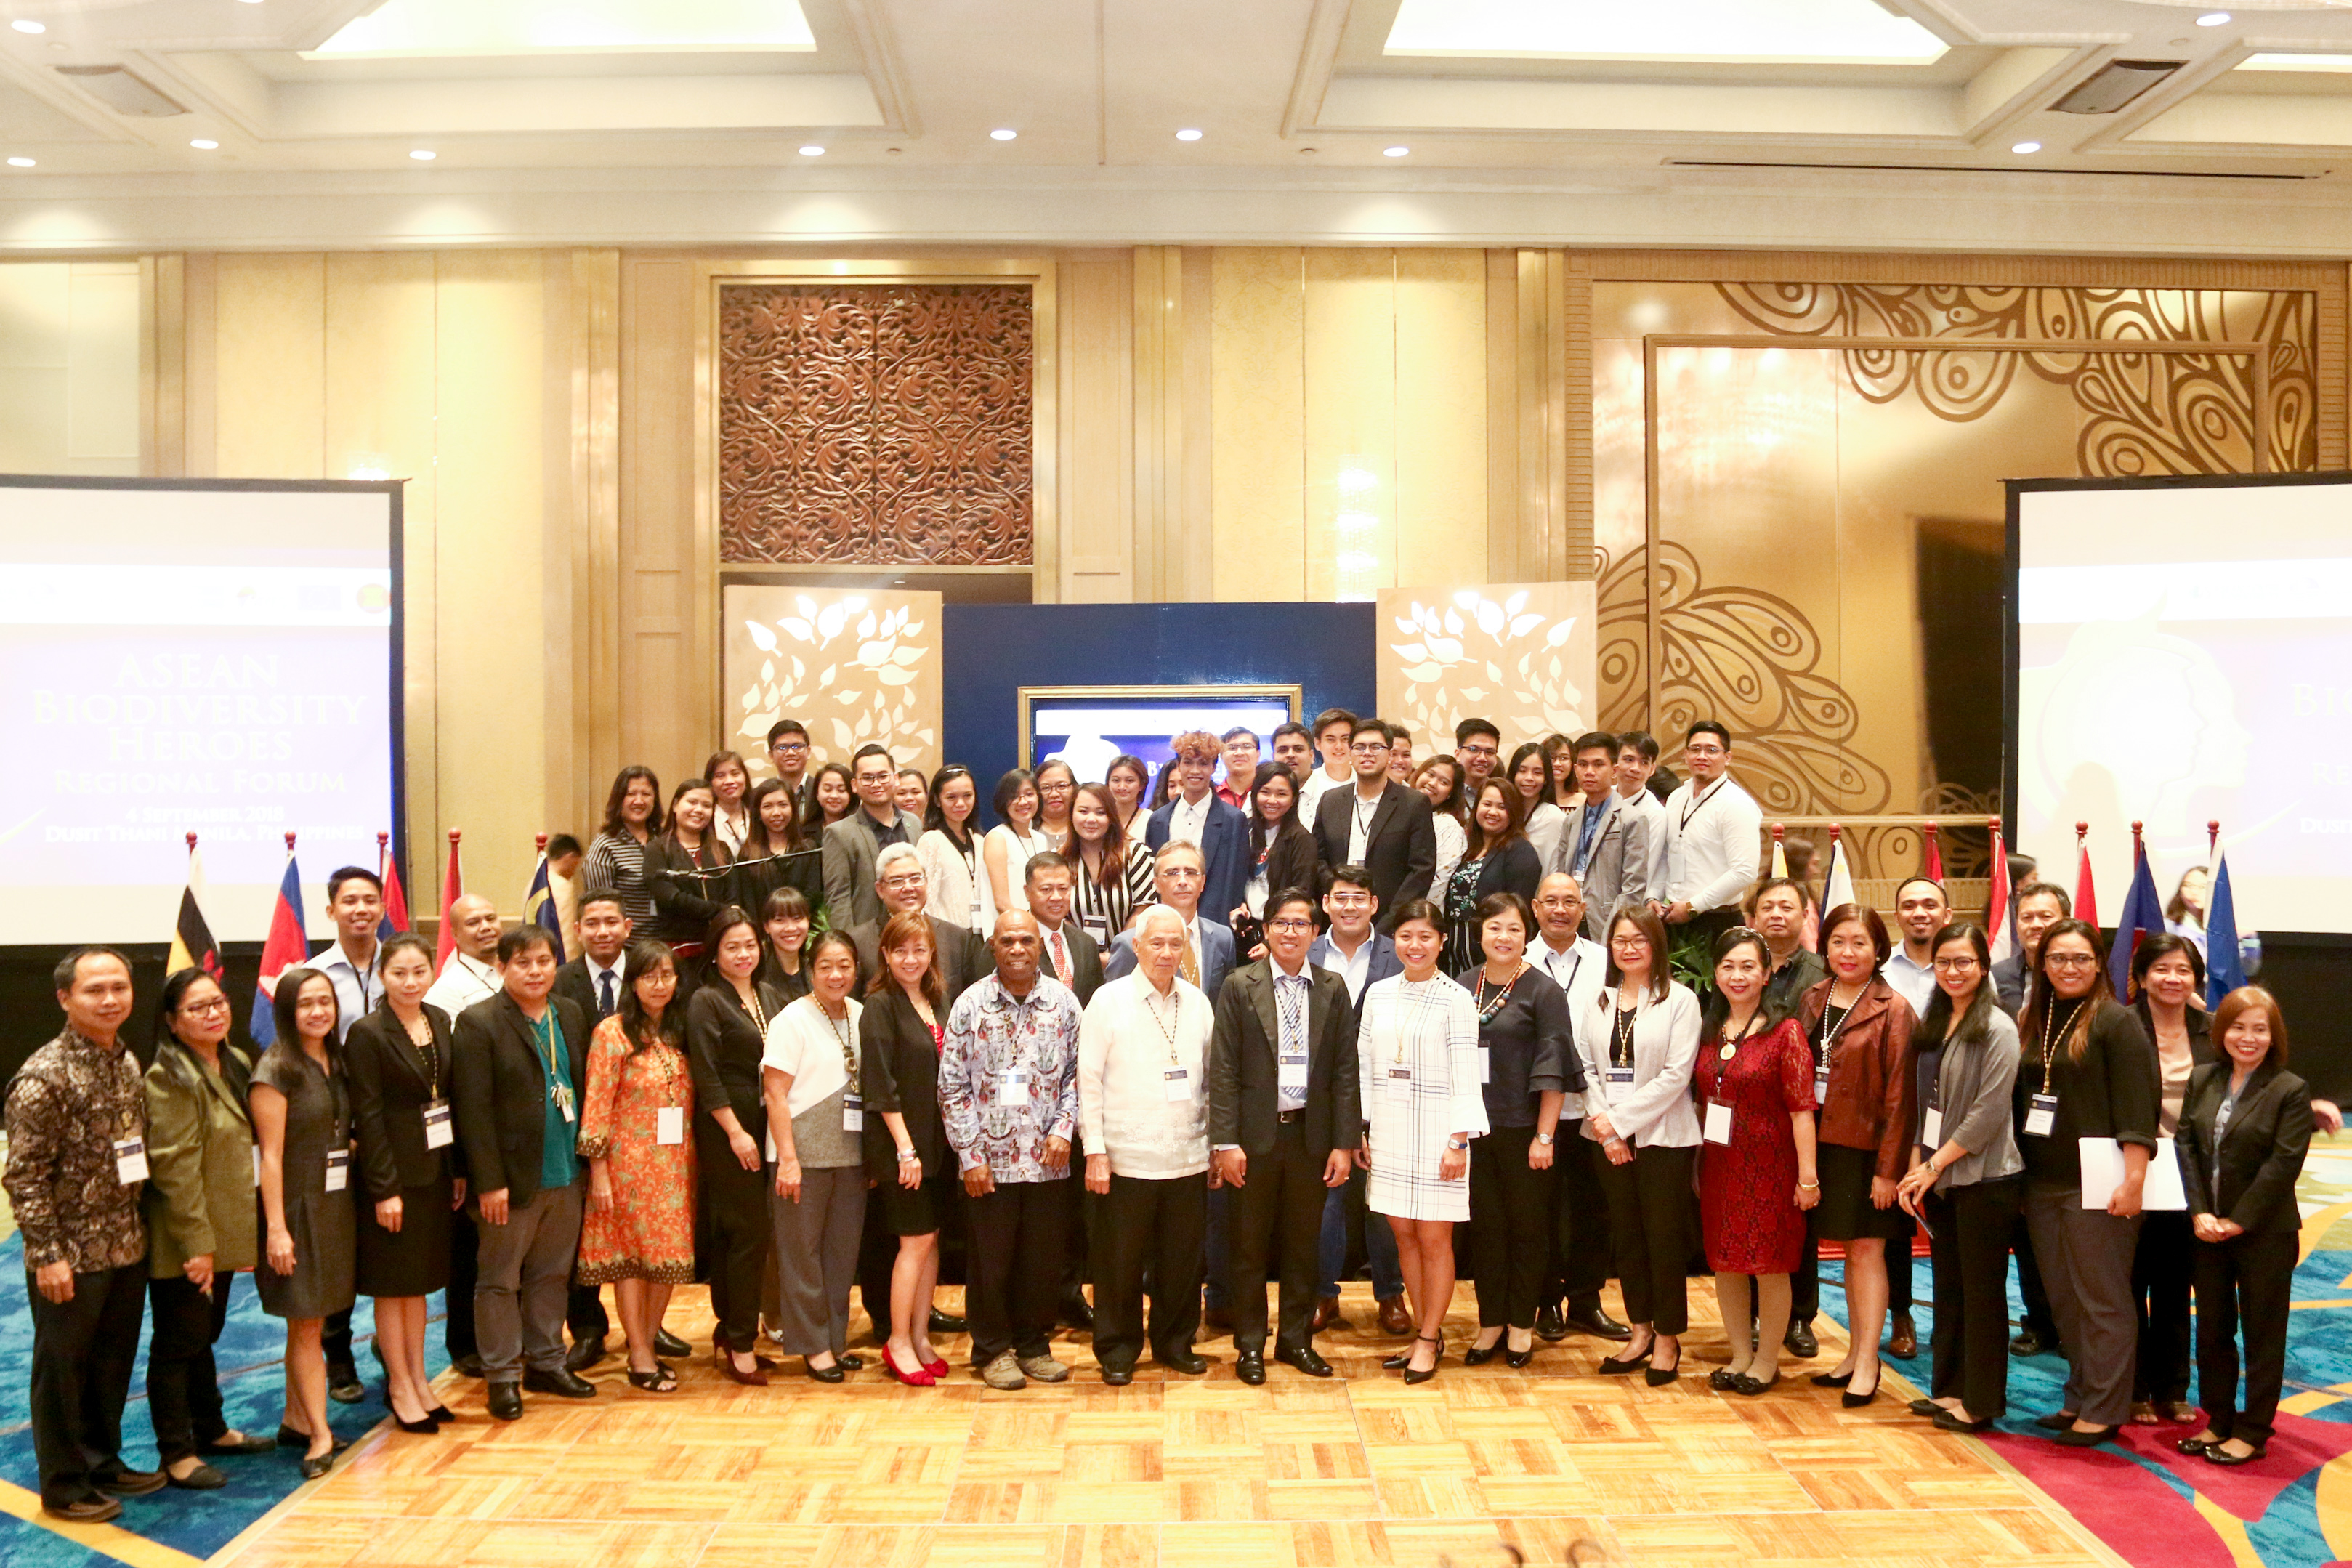 Attendees of the second leg of the ASEAN Biodiversity Heroes Regional Forum